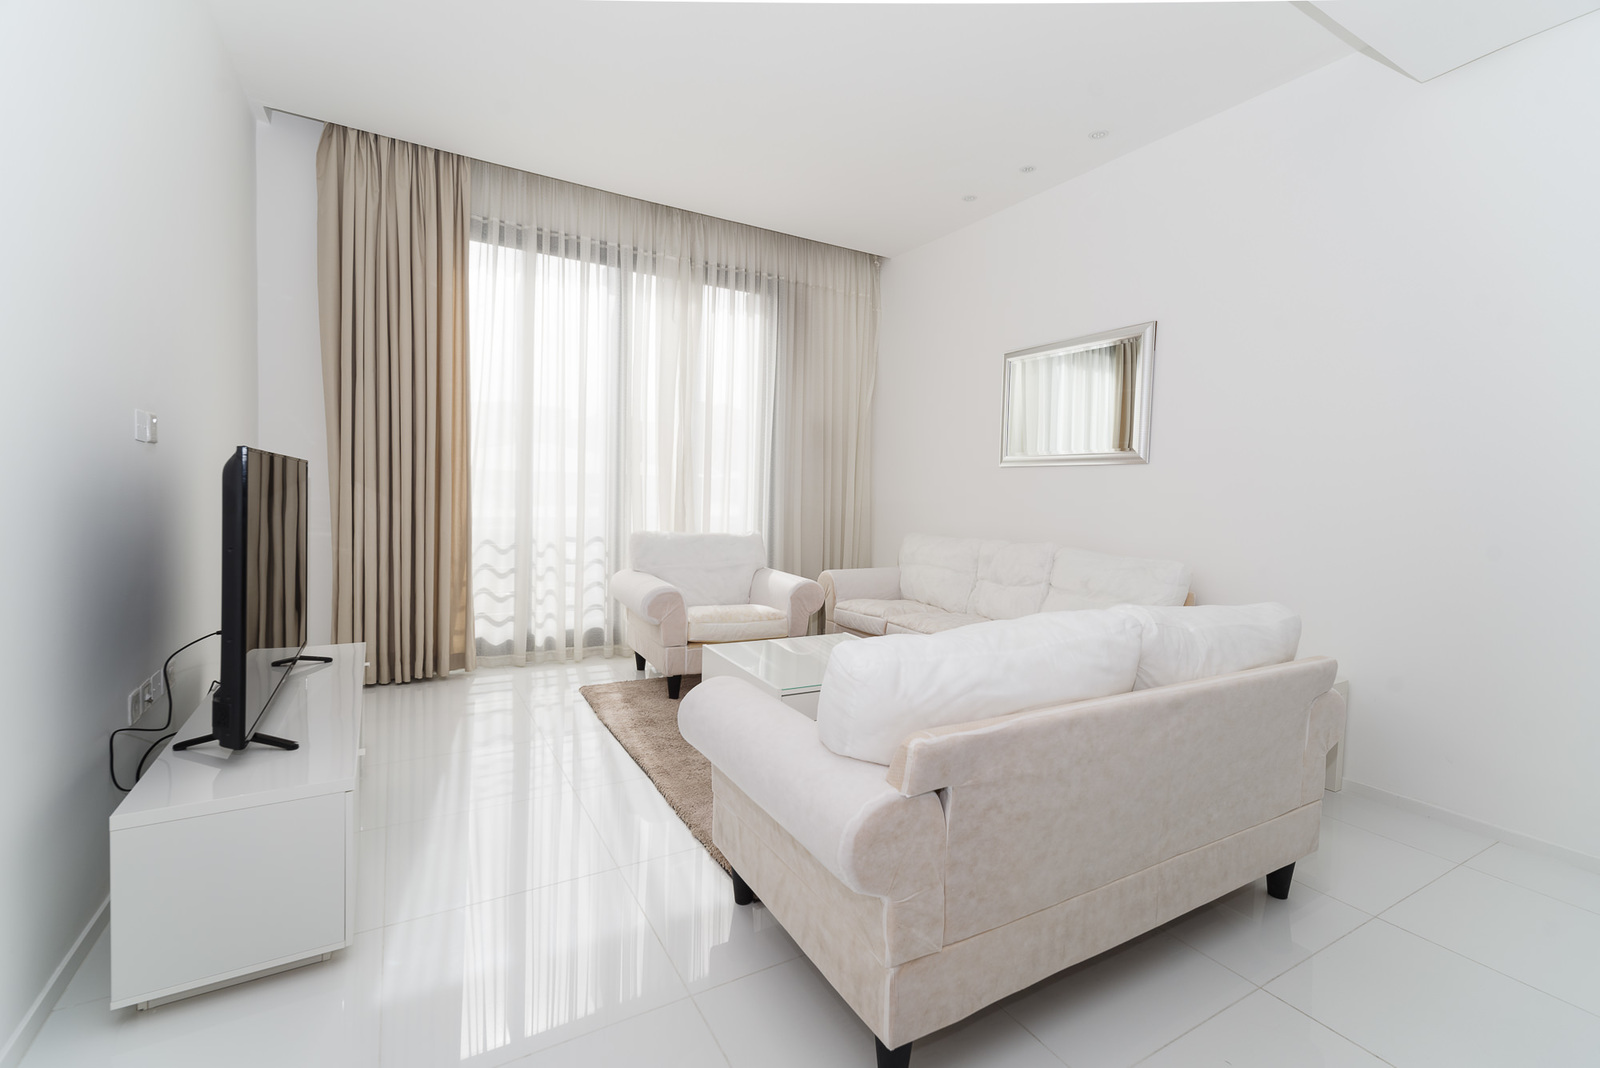 Sadiq – furnished, three bedroom apartments